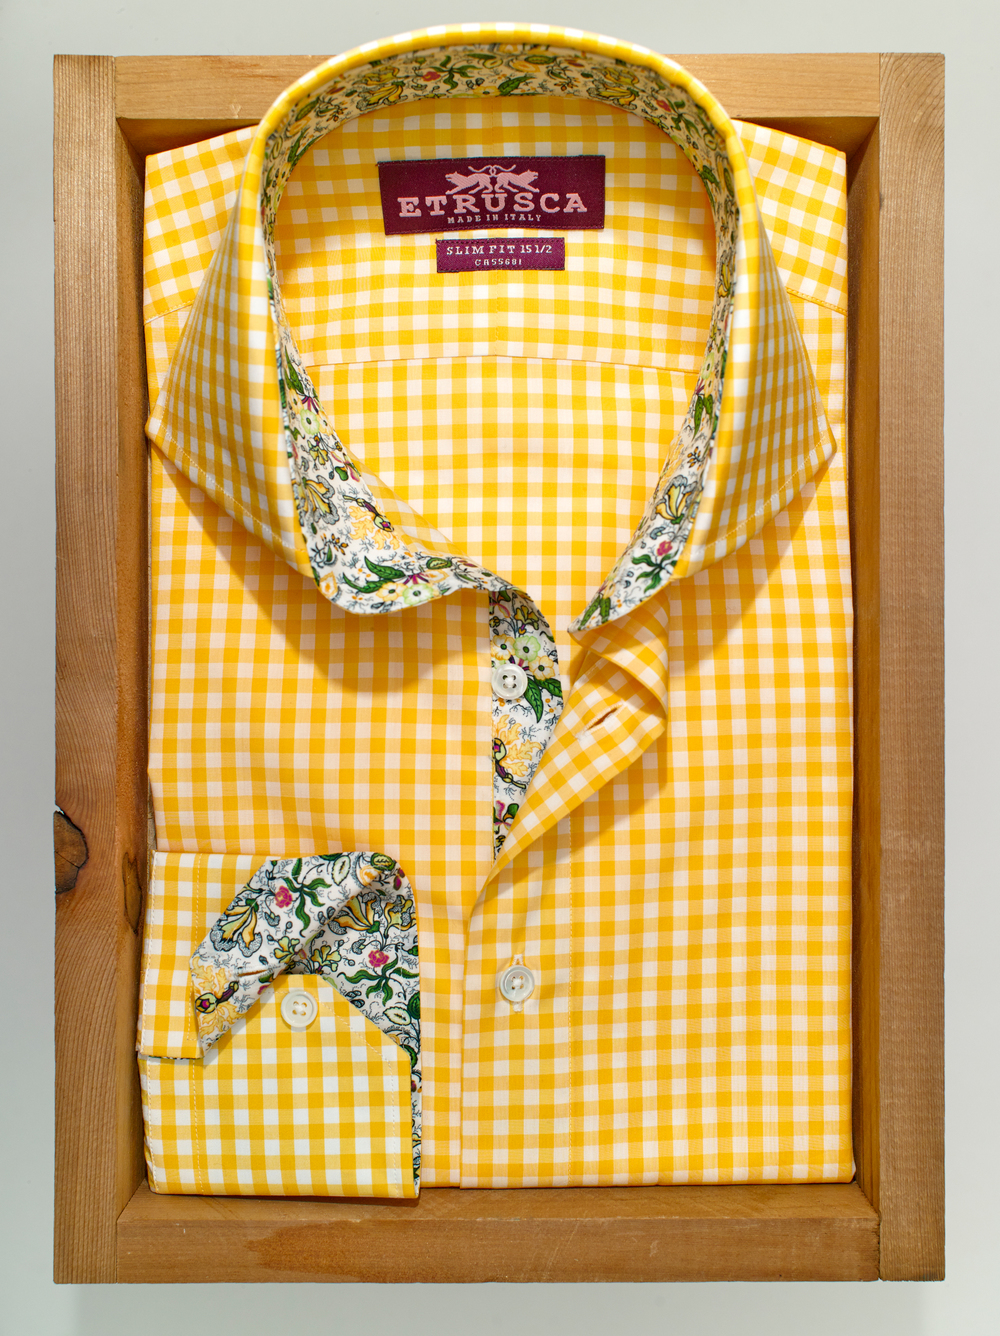 Etrusca-Collezione-Tre-Avvocato-Yellow-Gingham-Floral-Contrast-Folded-003-HR.jpg